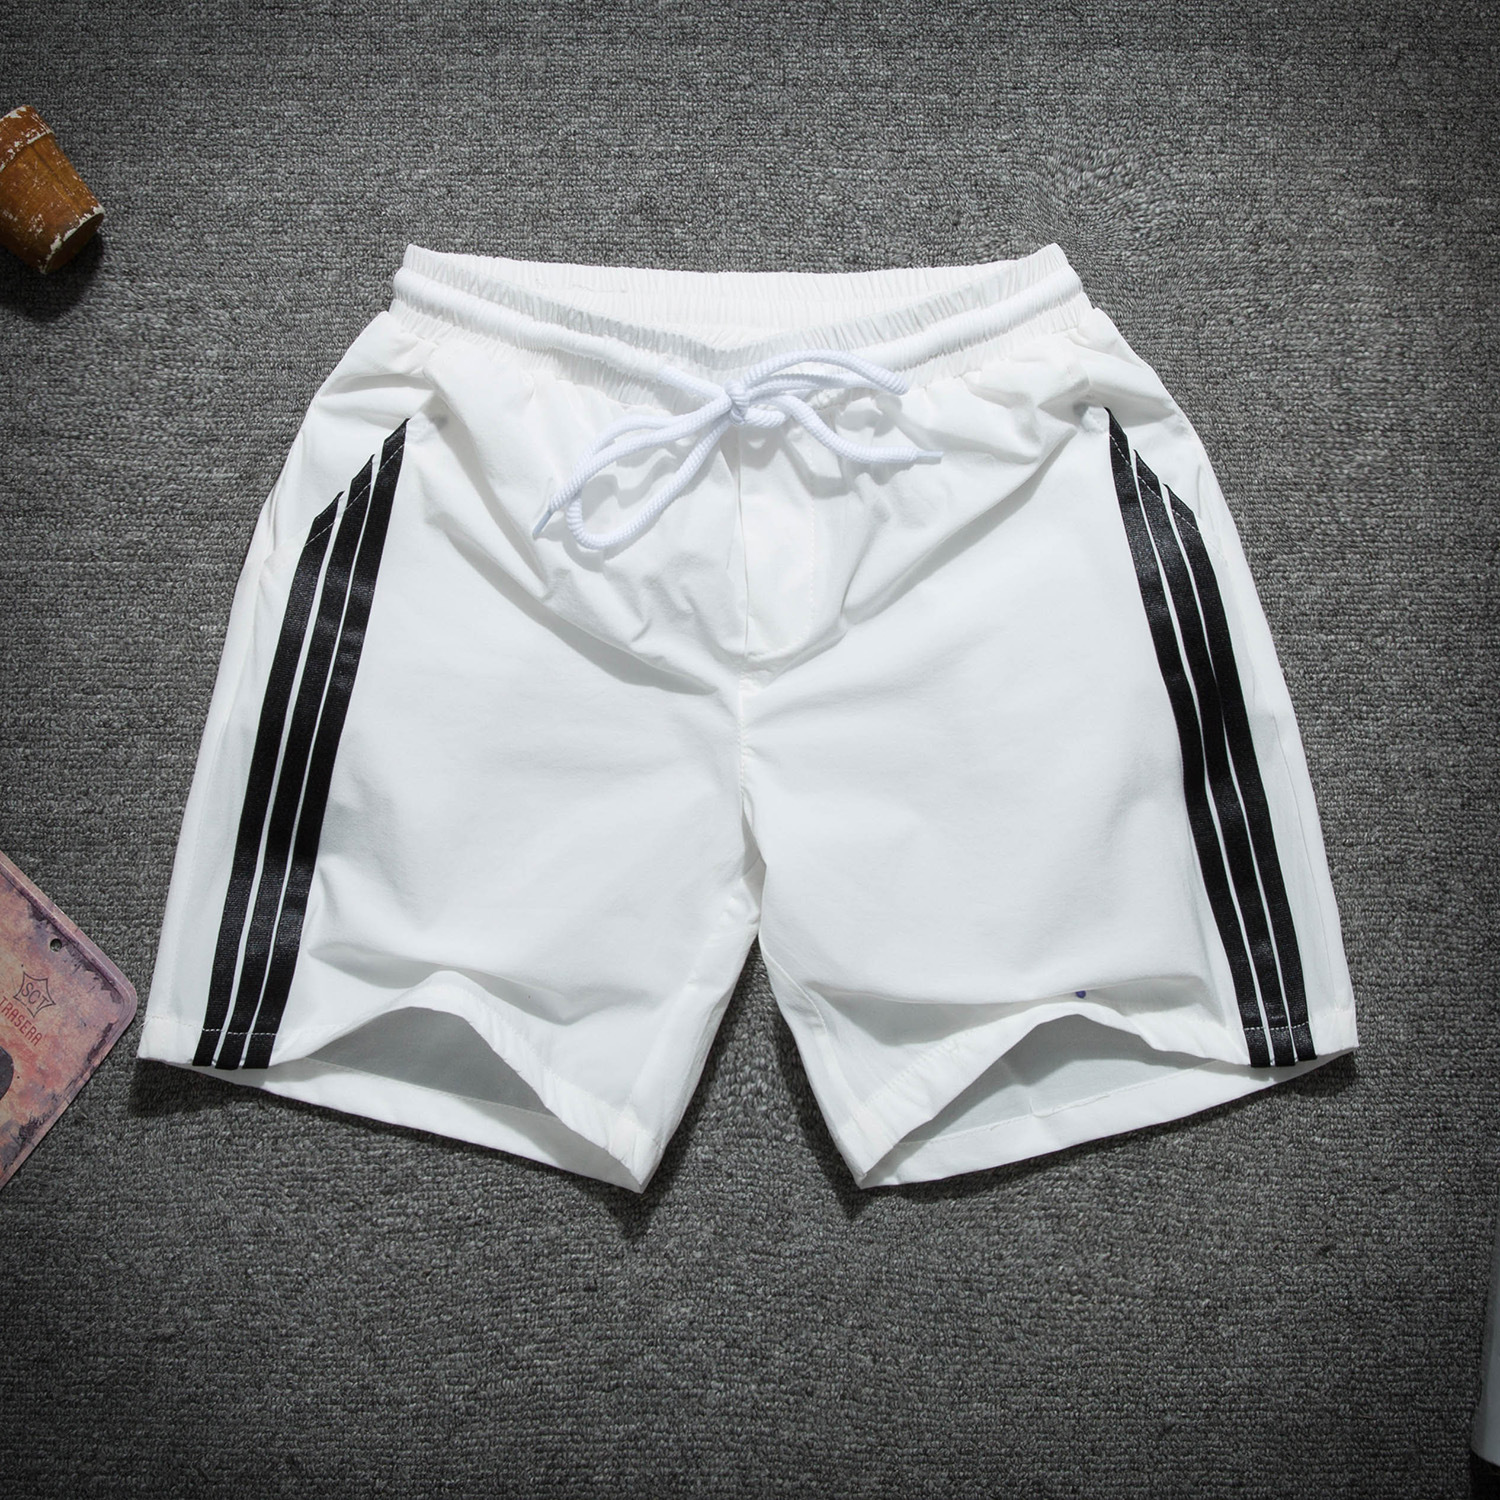 031 New Products Shorts Summer Loose-Fit Casual MEN'S Beach Pants Lively Like Reds Celebrity Style Shorts